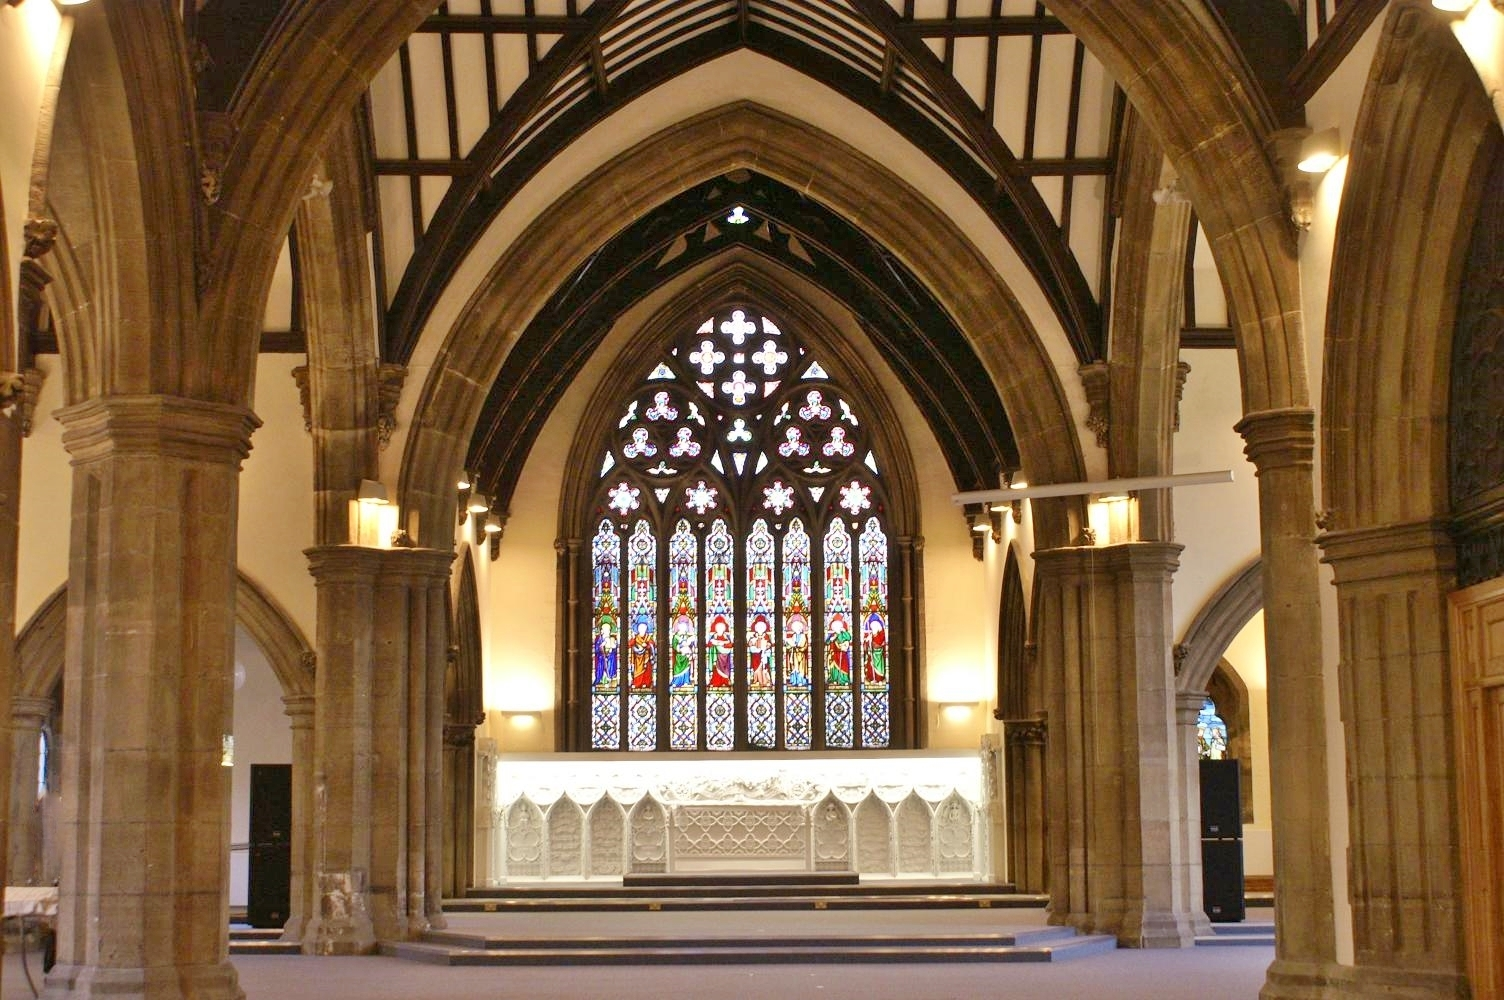 Existing stained glass window the appearance of which has been considerably enhanced by the decoration and lighting scheme